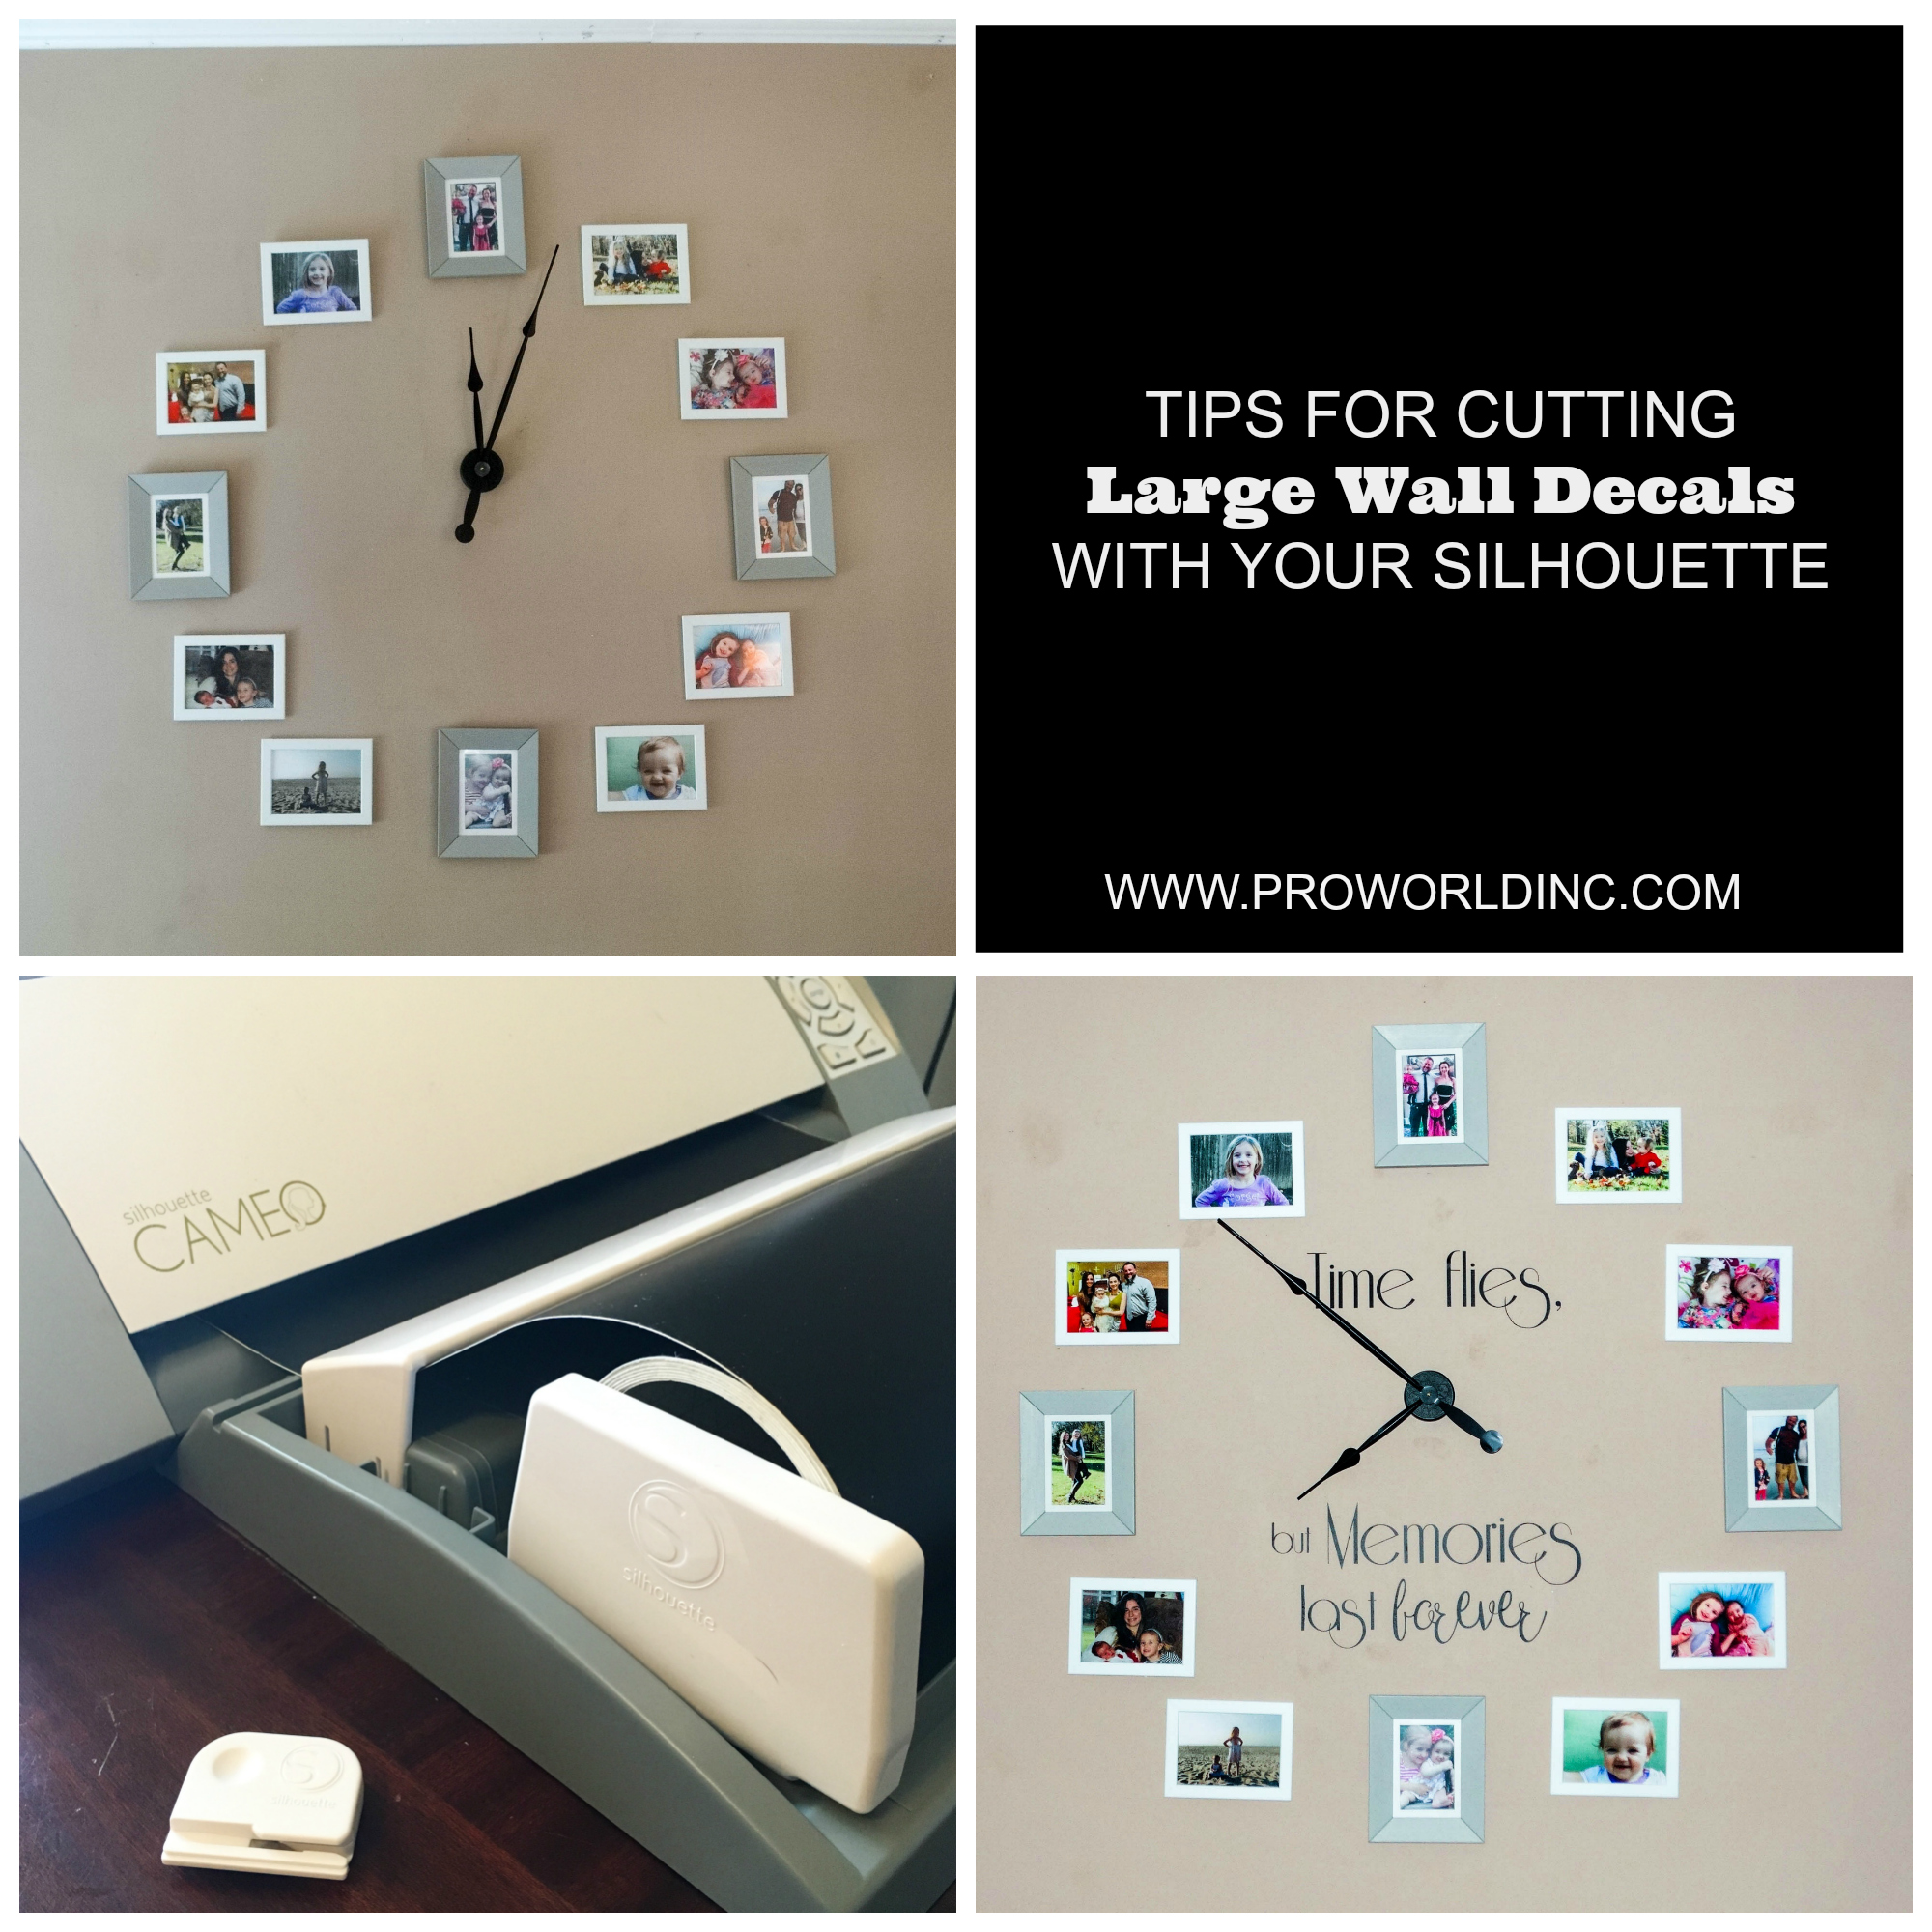 Tips for cutting large vinyl decals pro world inco world inc tips for cutting large vinyl decals with your silhouette machine amipublicfo Choice Image